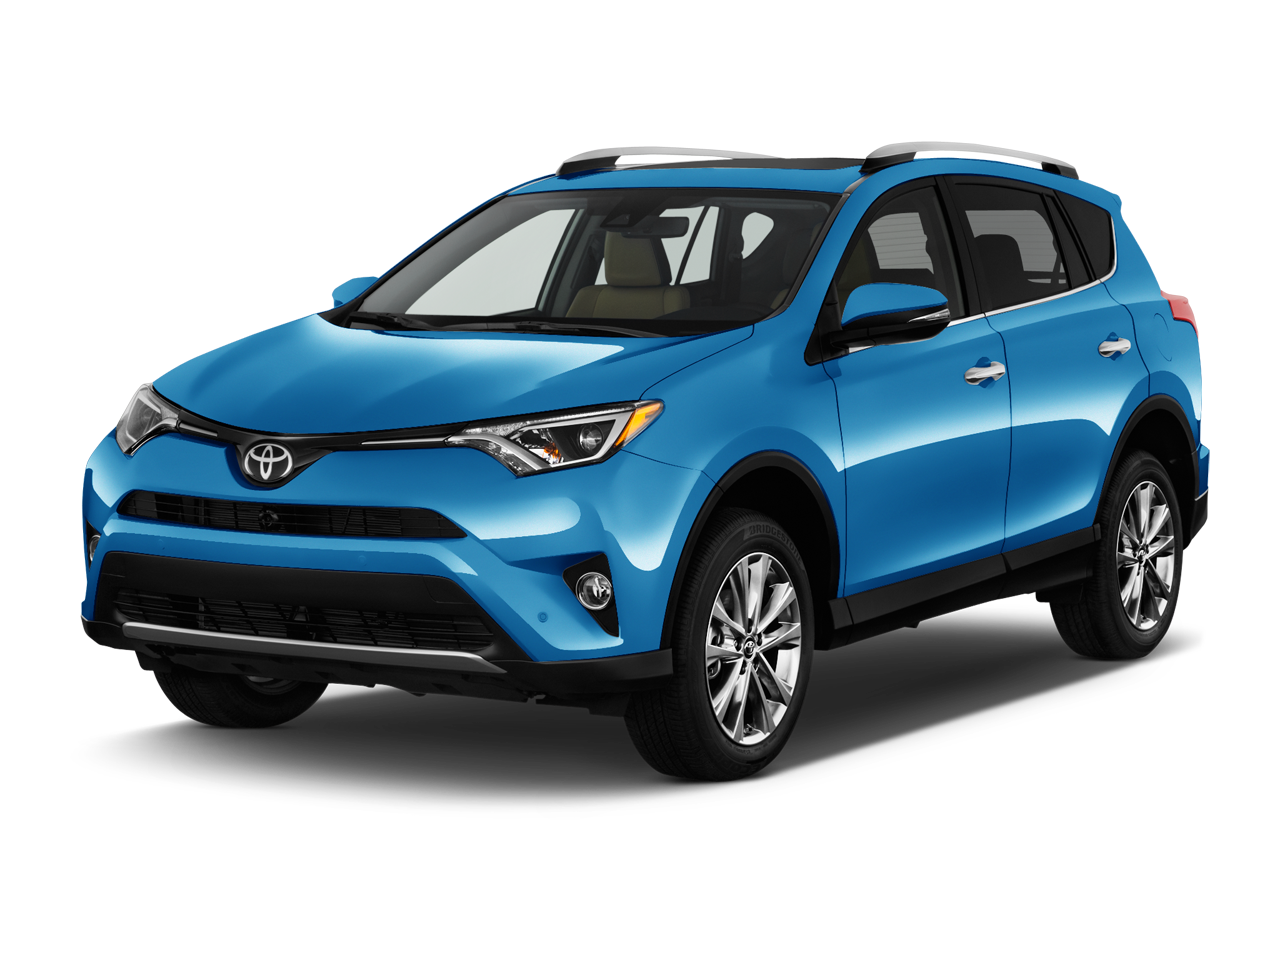 Toyota RAV4 Owners Manual: Memory recall function (vehicles with a smart key system)